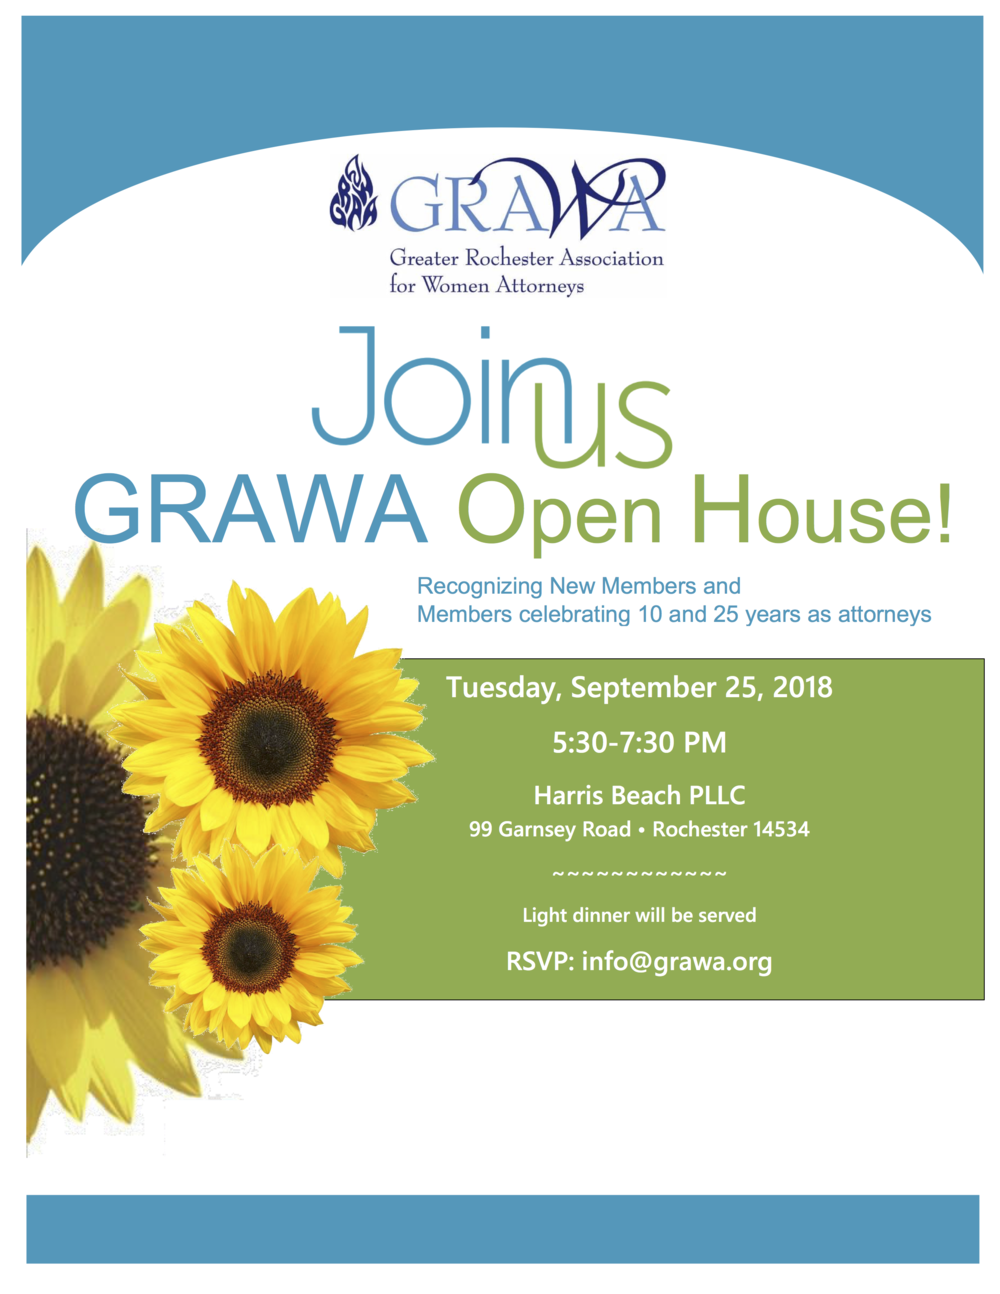 2018 GRAWA Open House Event.png